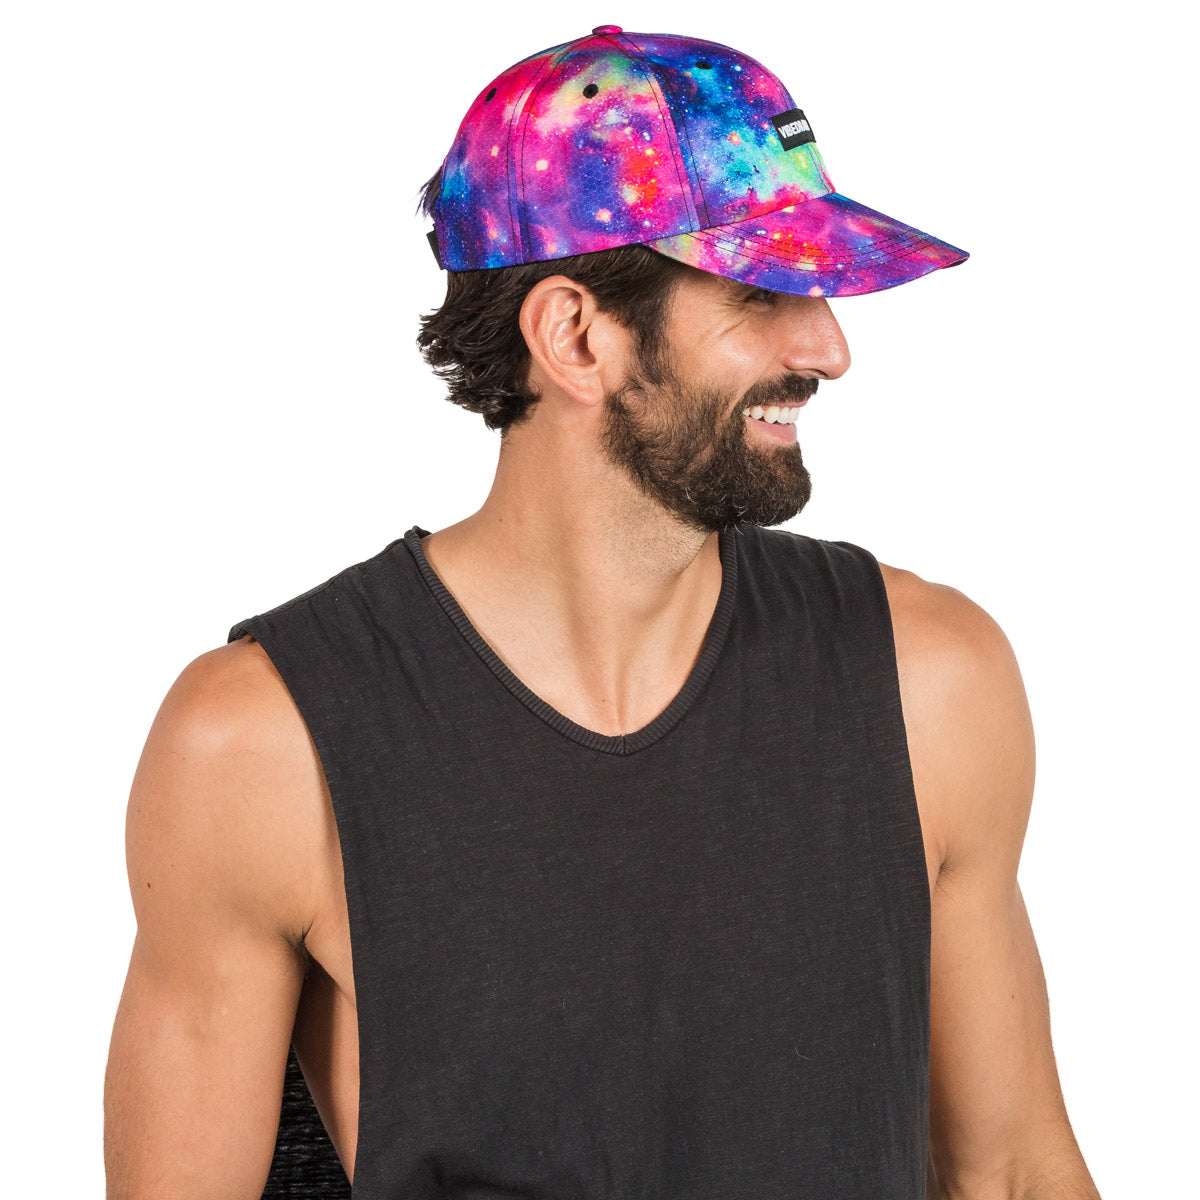 Adjustable Galaxy Printed Hat for Music Festivals and Raves